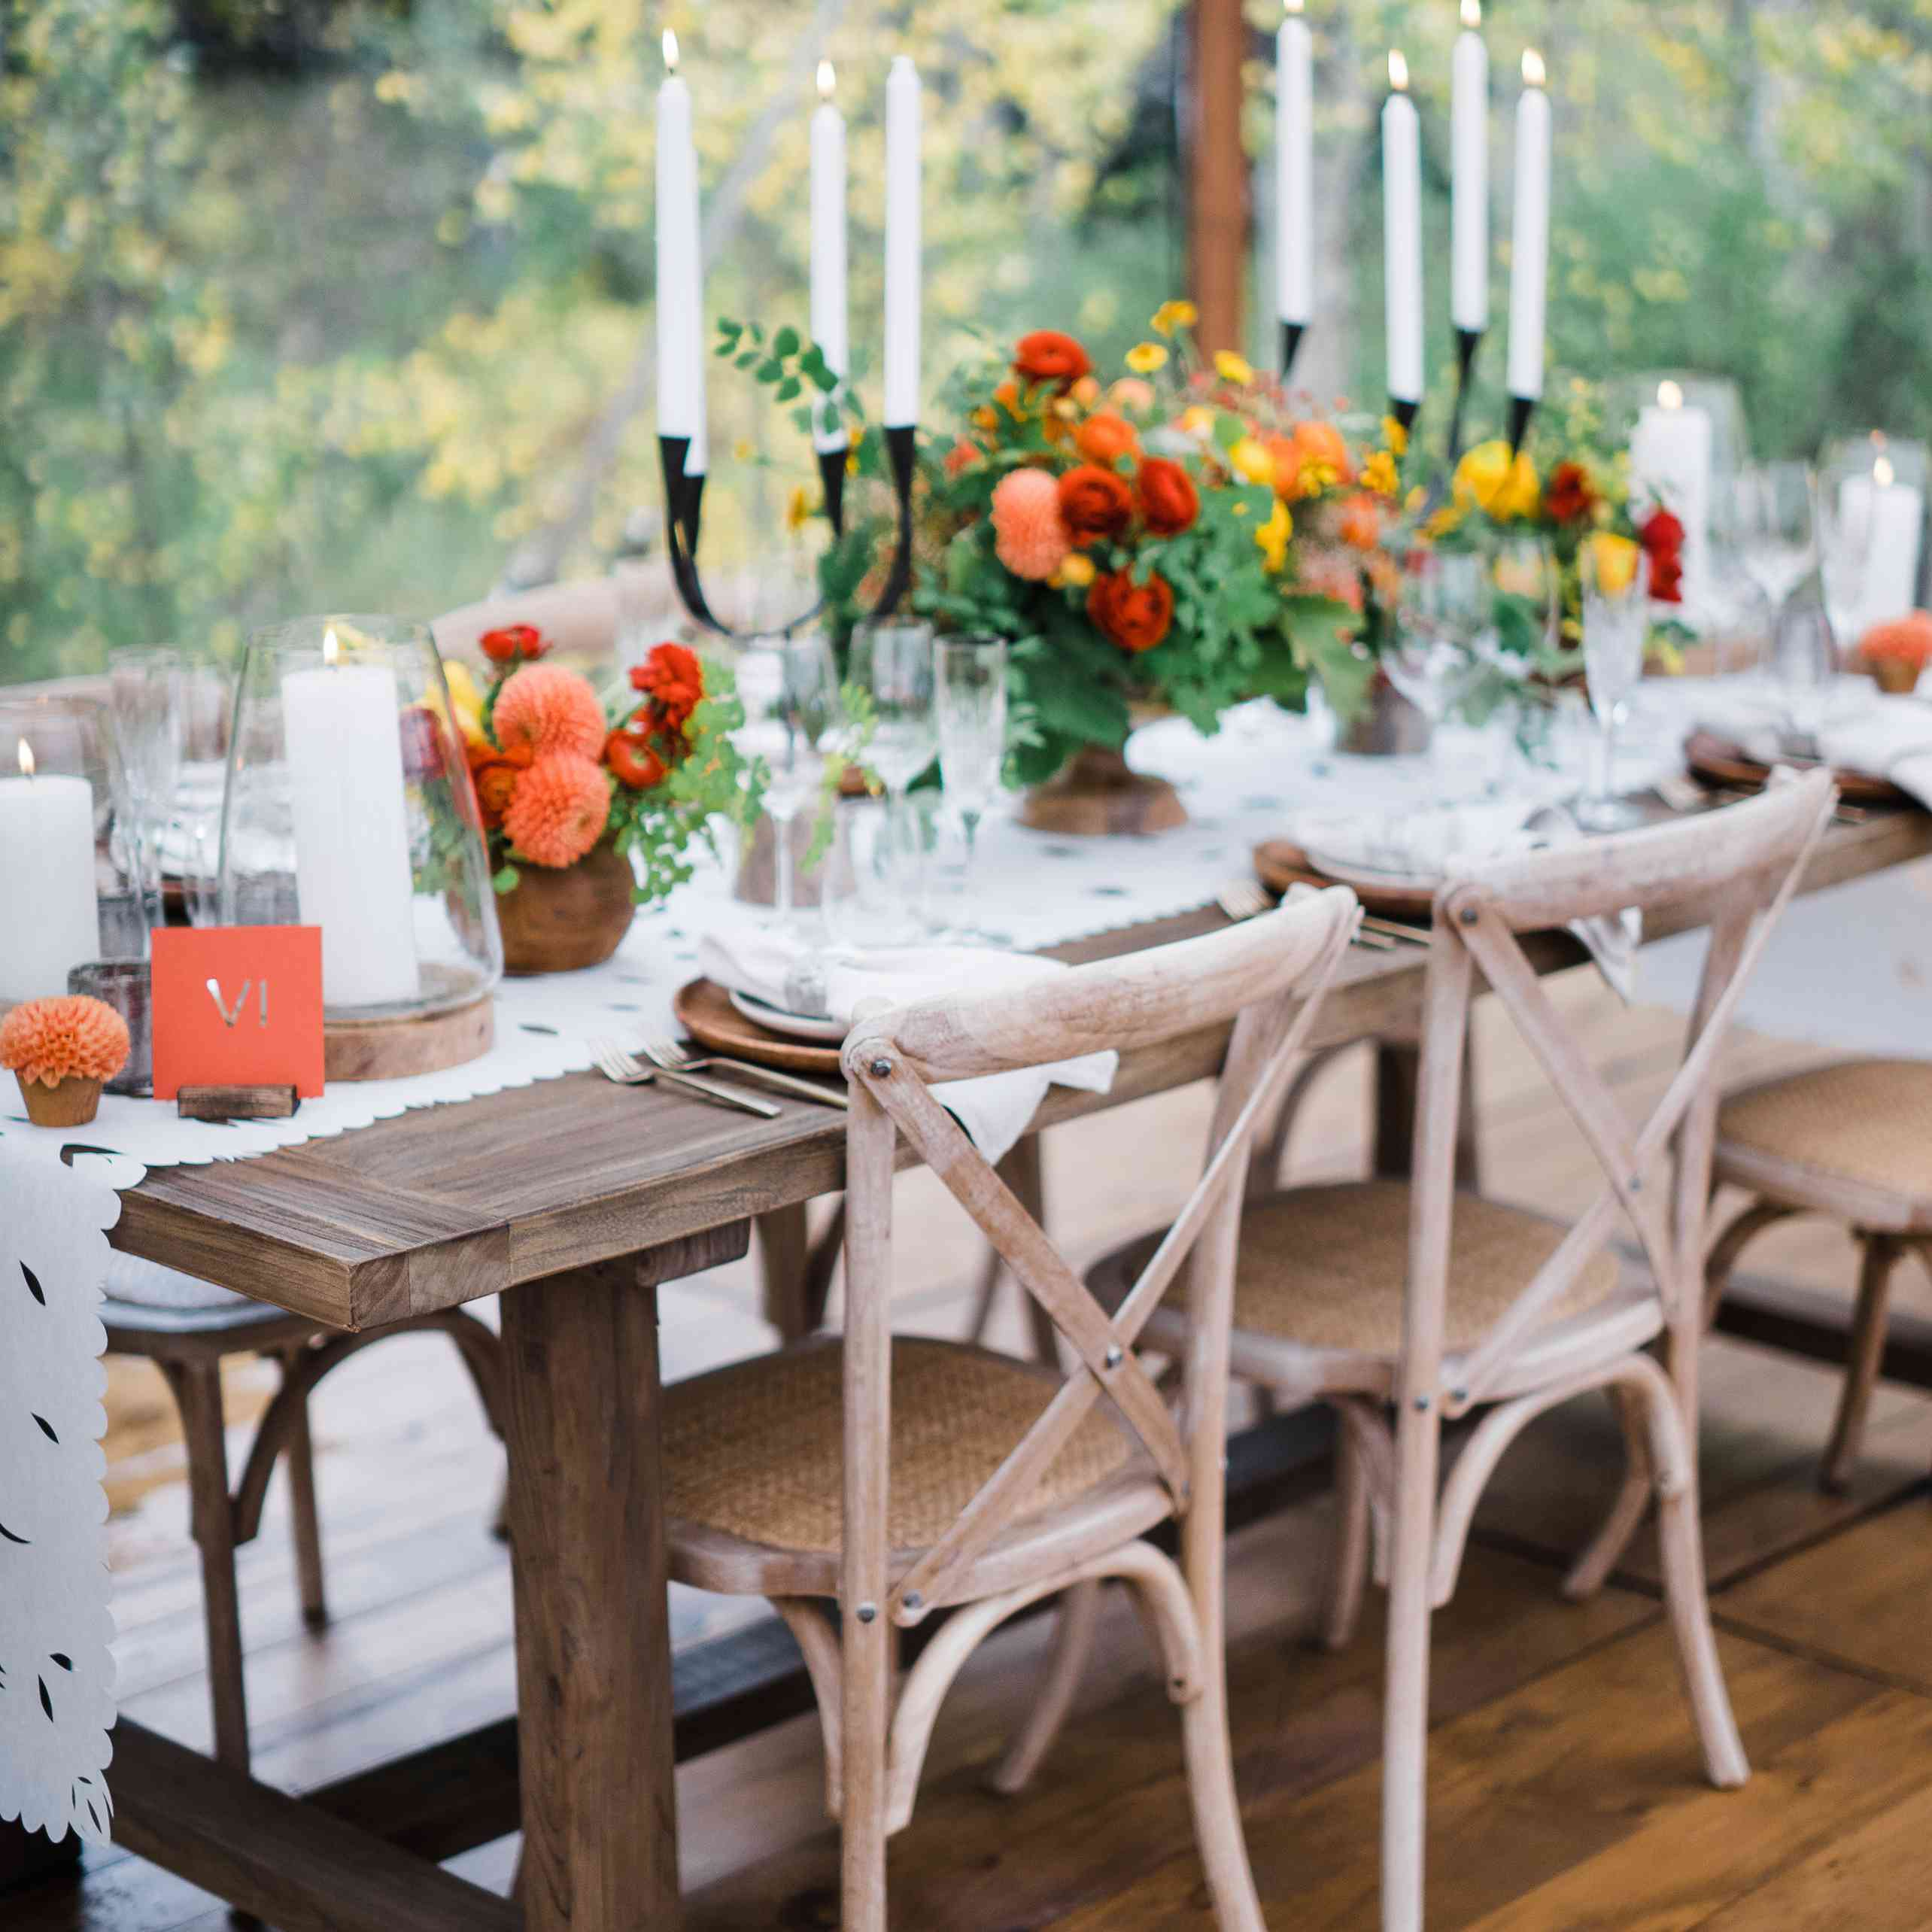 Natural wood wedding reception seating with candles and floral décor